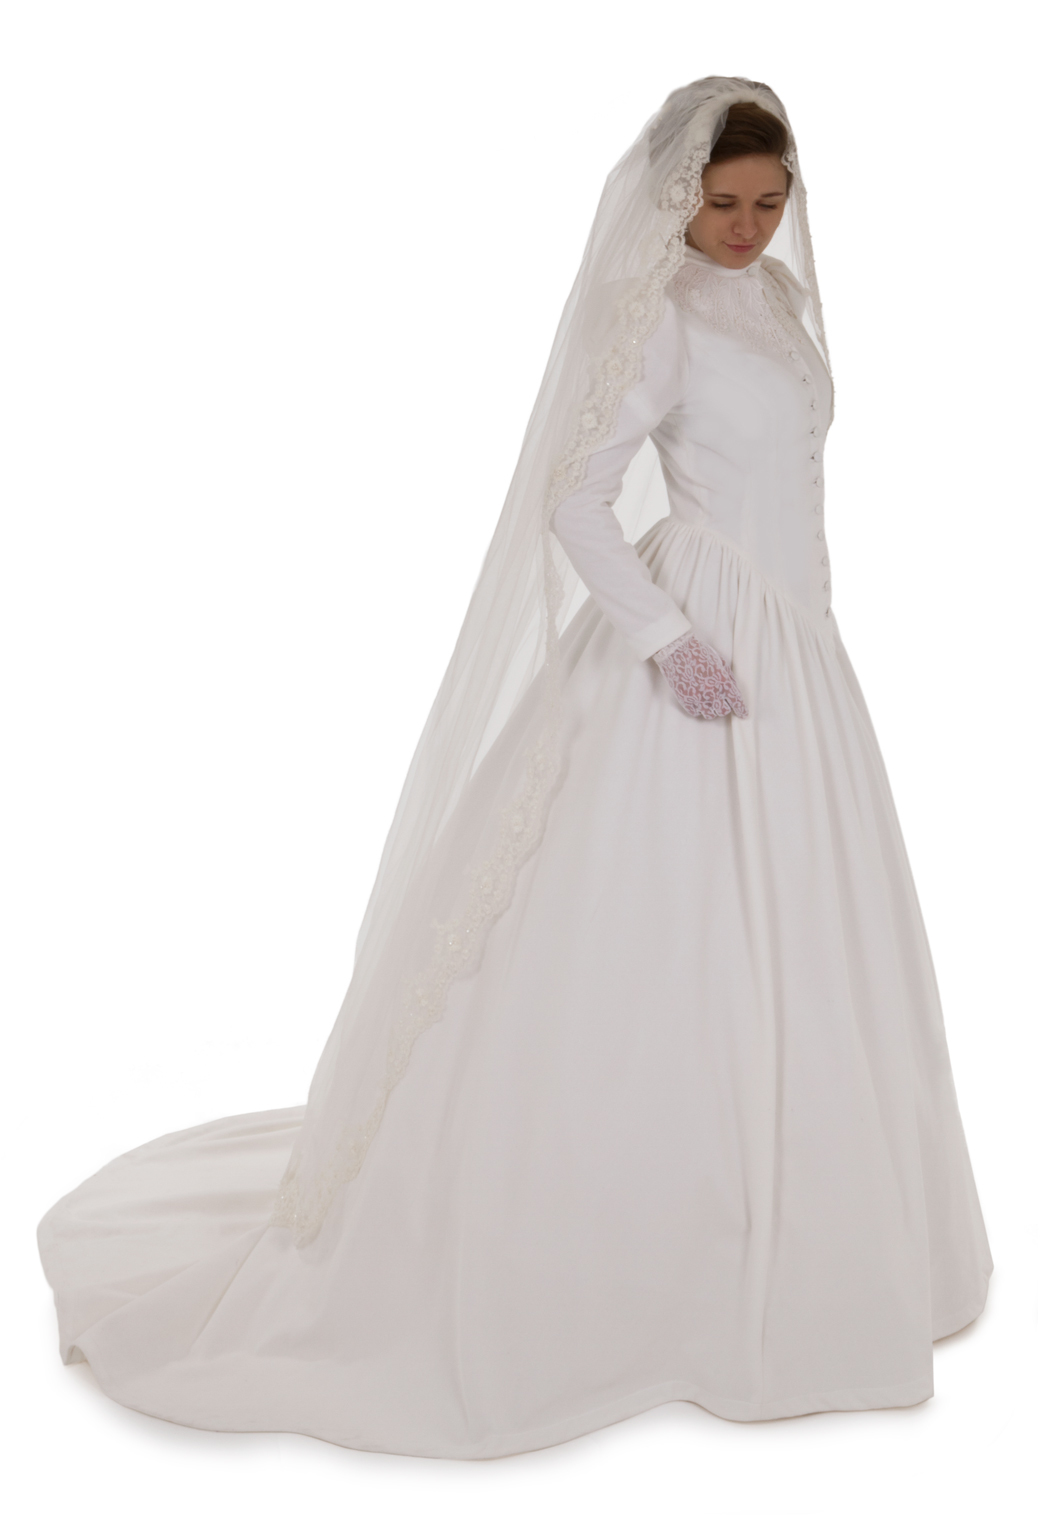 a breakdown of what a victorian bride wore victorian wedding dress Recollections has everything that you need for the Victorian wedding dress of your dreams Most of our Victorian gowns can be made in white